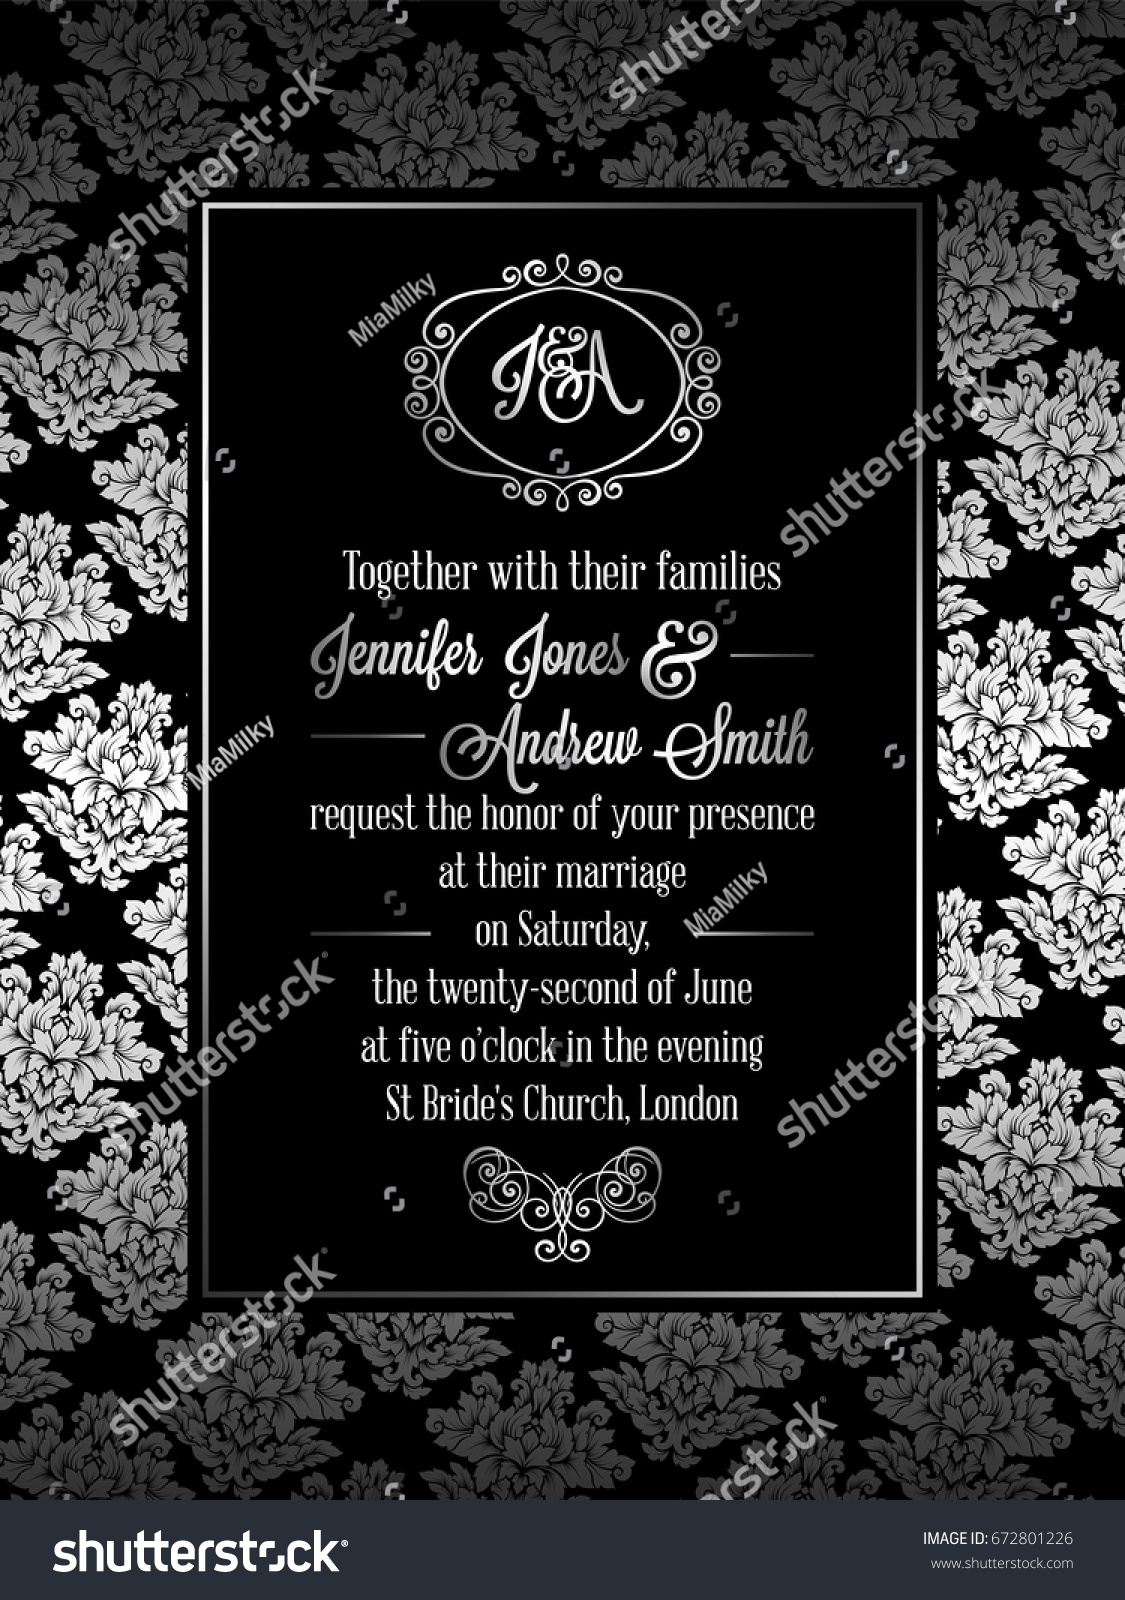 Vintage baroque style wedding invitation card stock vector vintage baroque style wedding invitation card template elegant formal design with damask background stopboris Choice Image